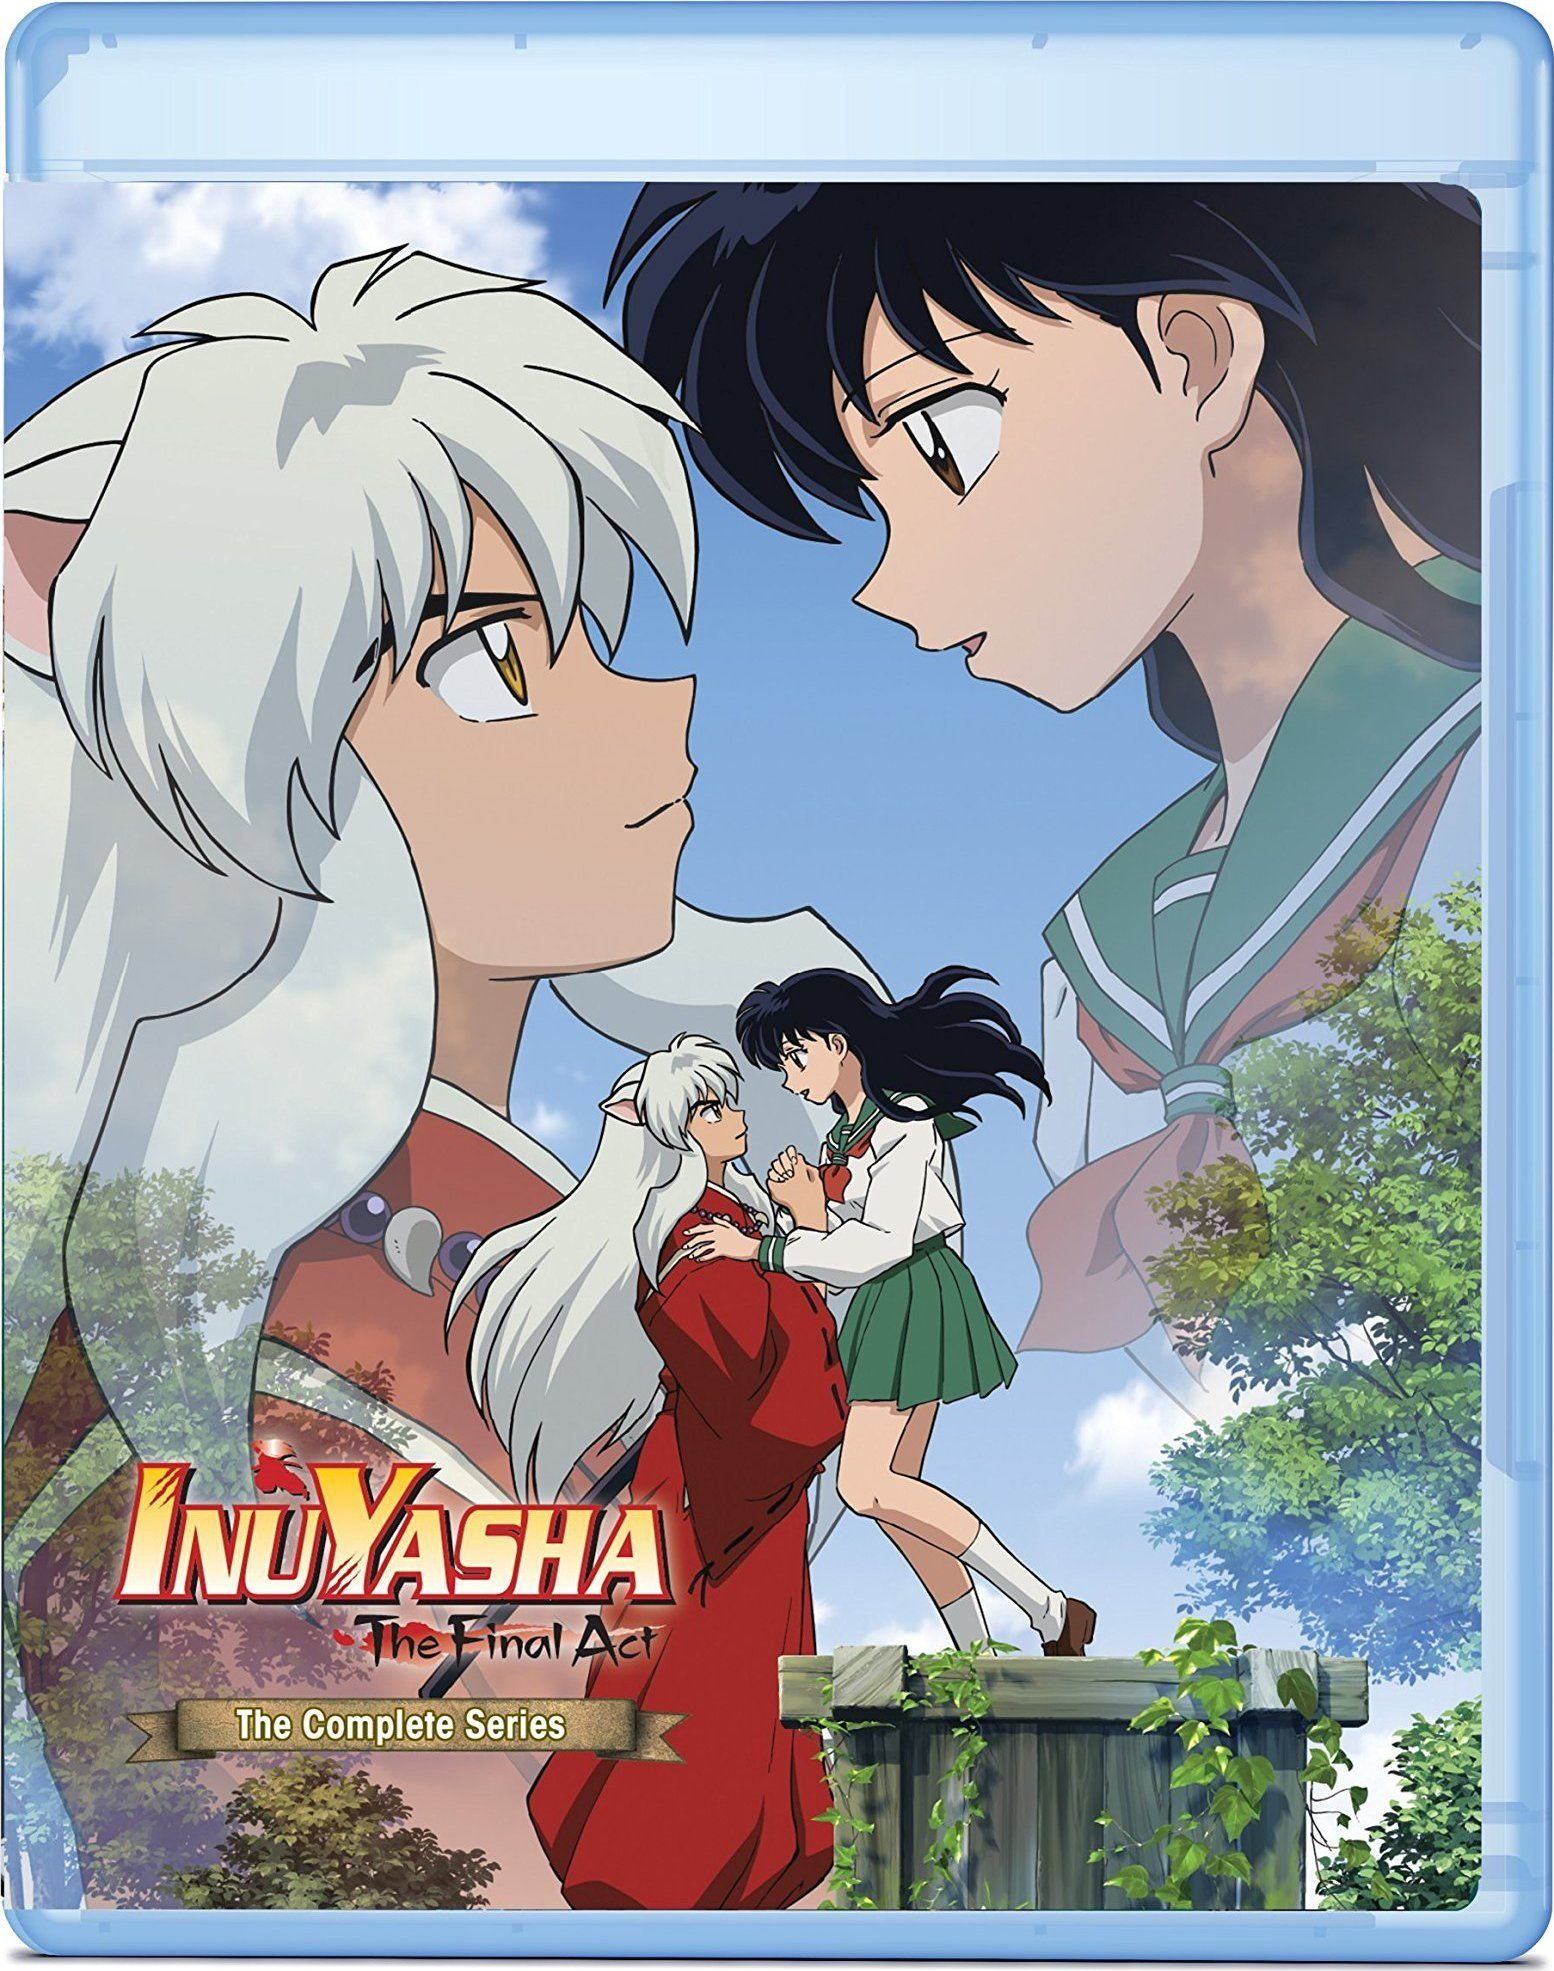 Inuyasha the final act the complete series bluray